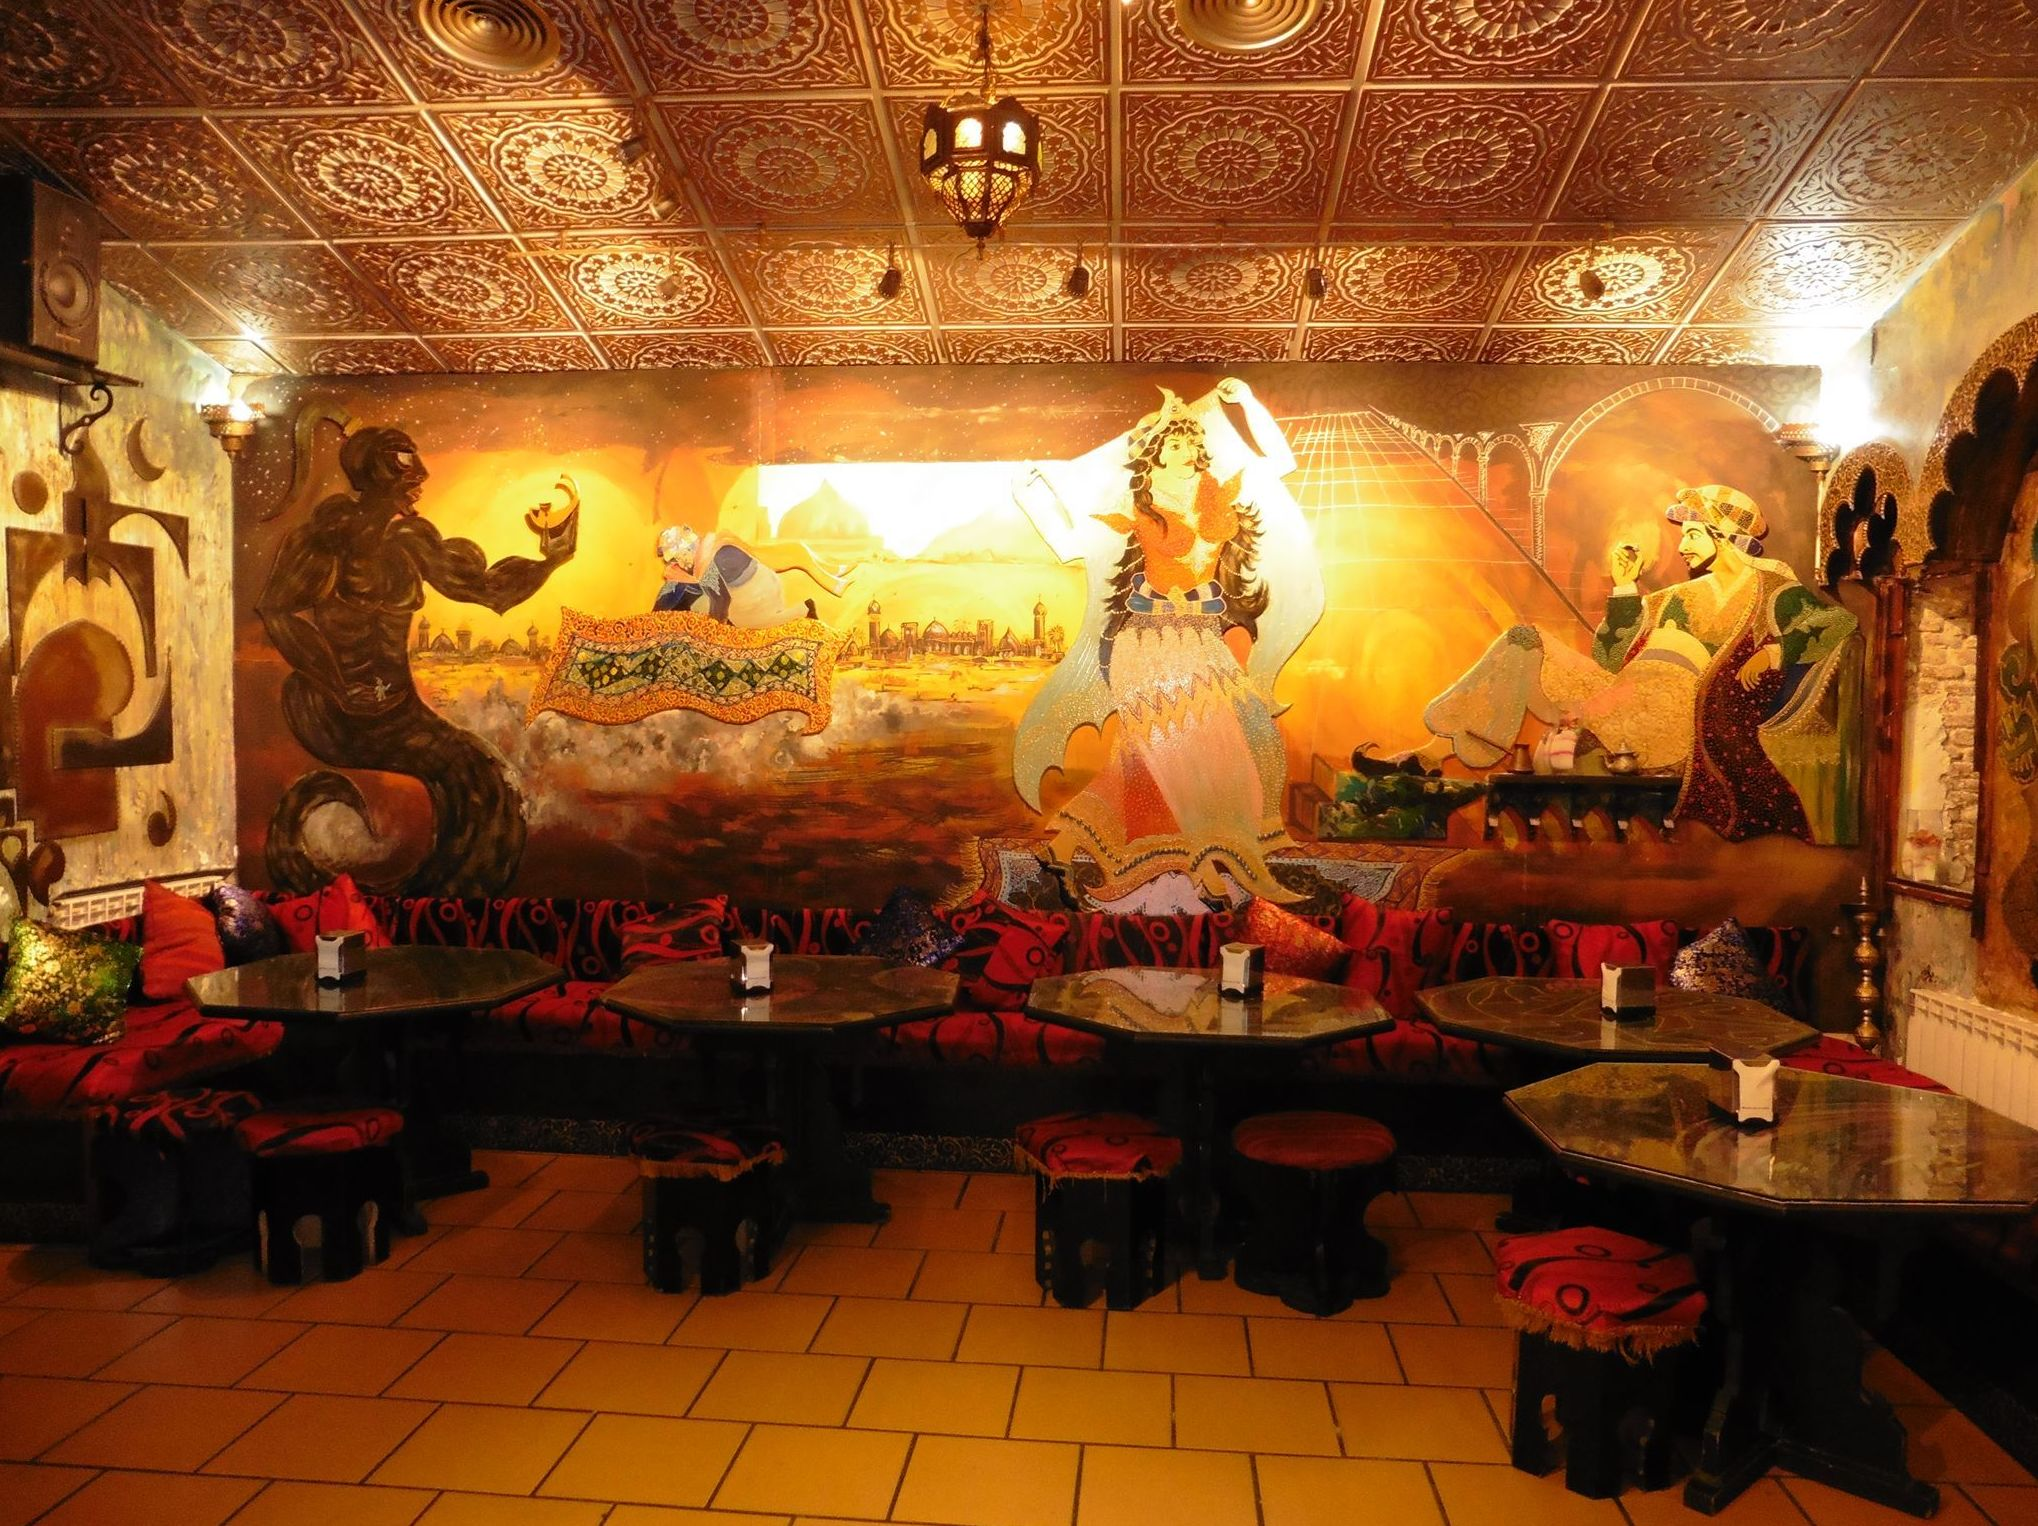 Restaurante con una exquisita decoración oriental en Madrid